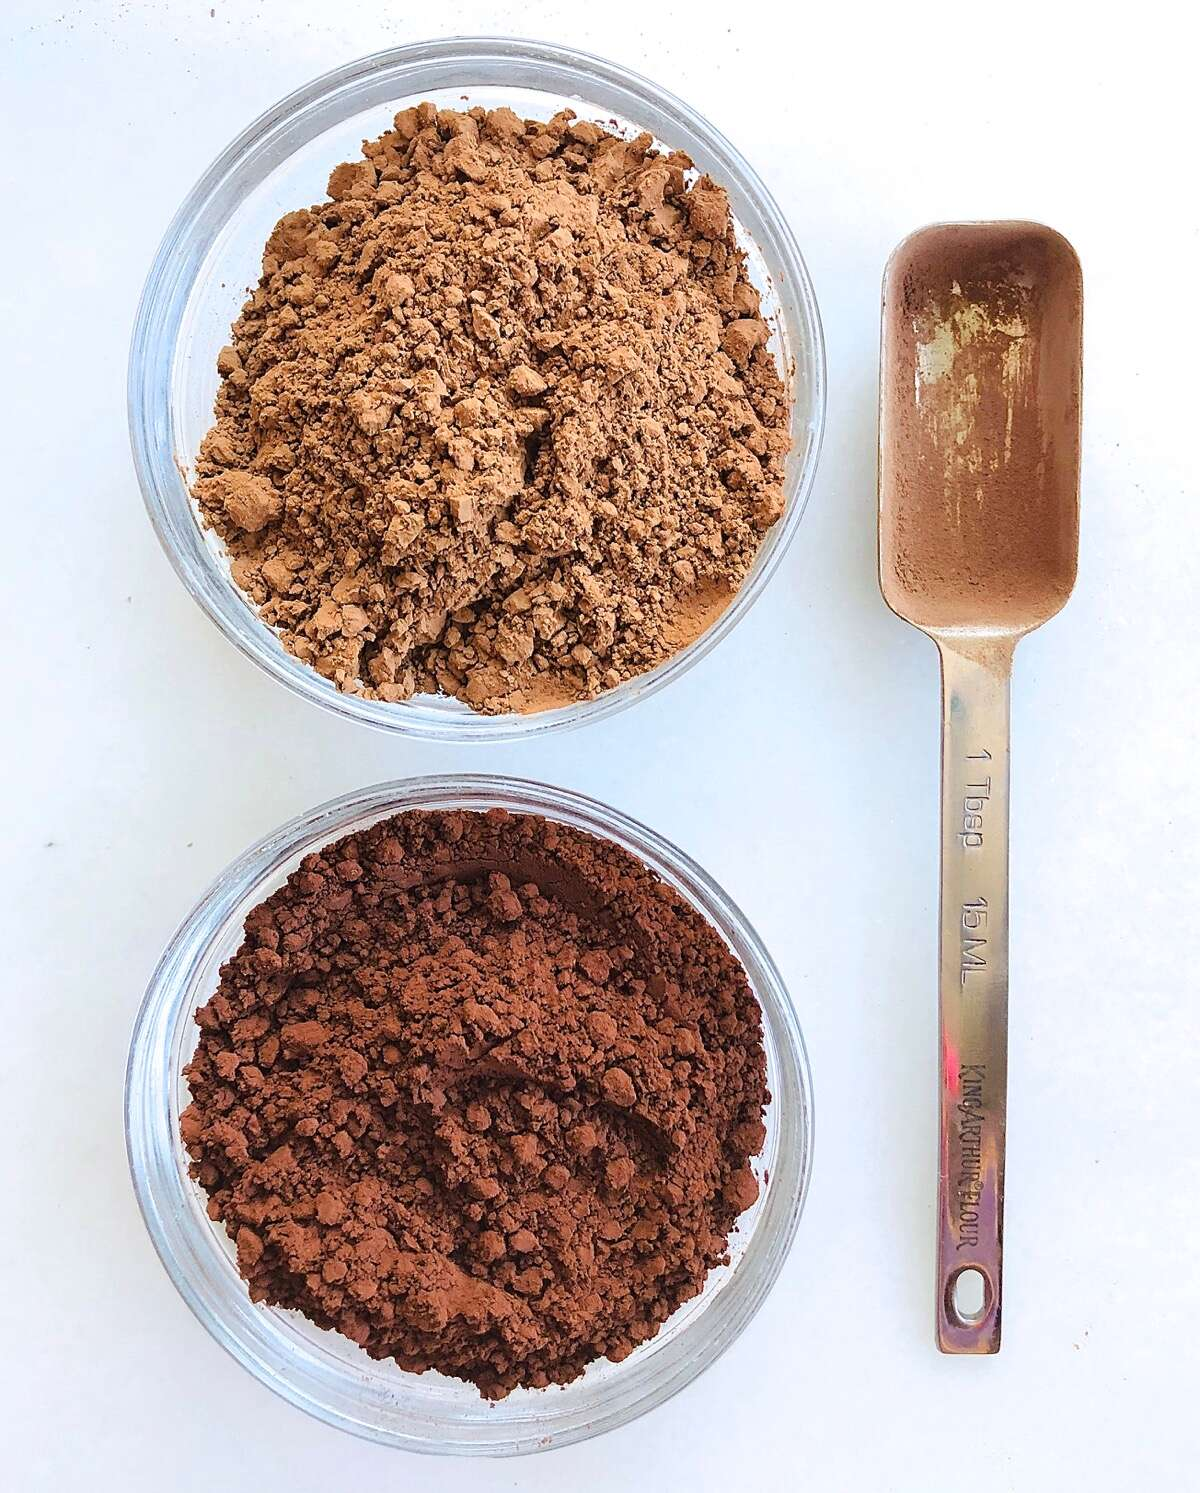 Natural cocoa and Dutch-process cocoa in small bowls showing color difference.